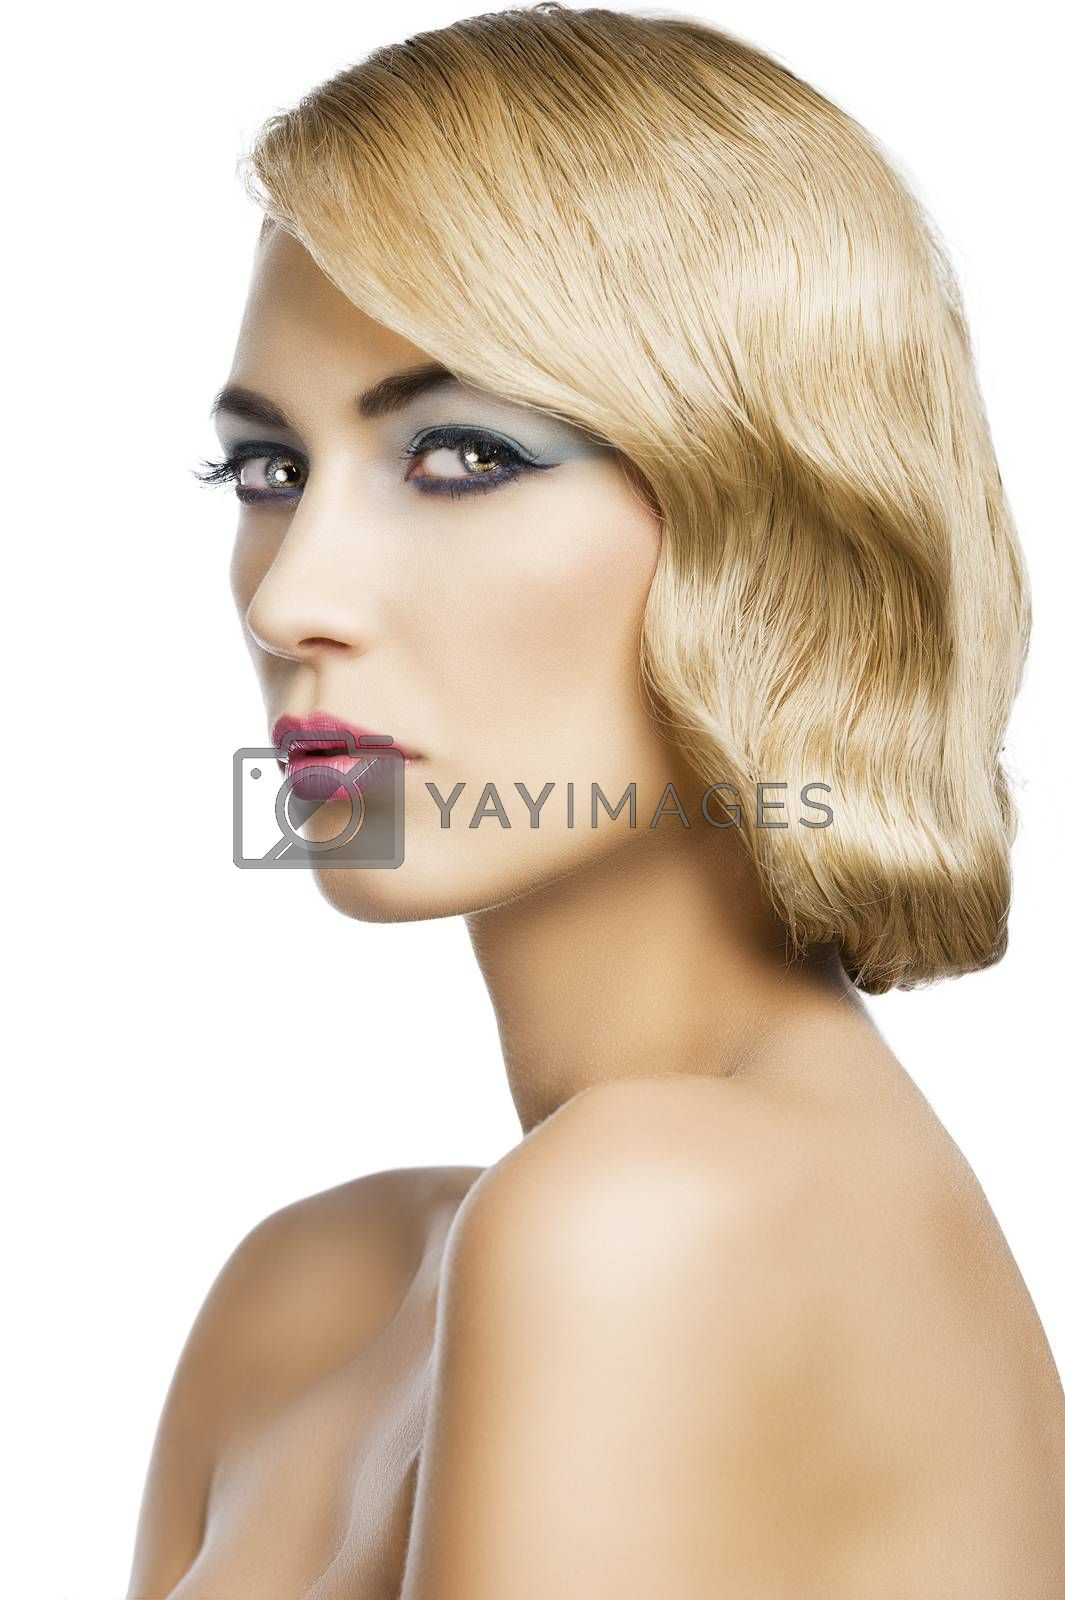 Royalty free image of blond vintage girl portrait, she is turned to the right by fotoCD